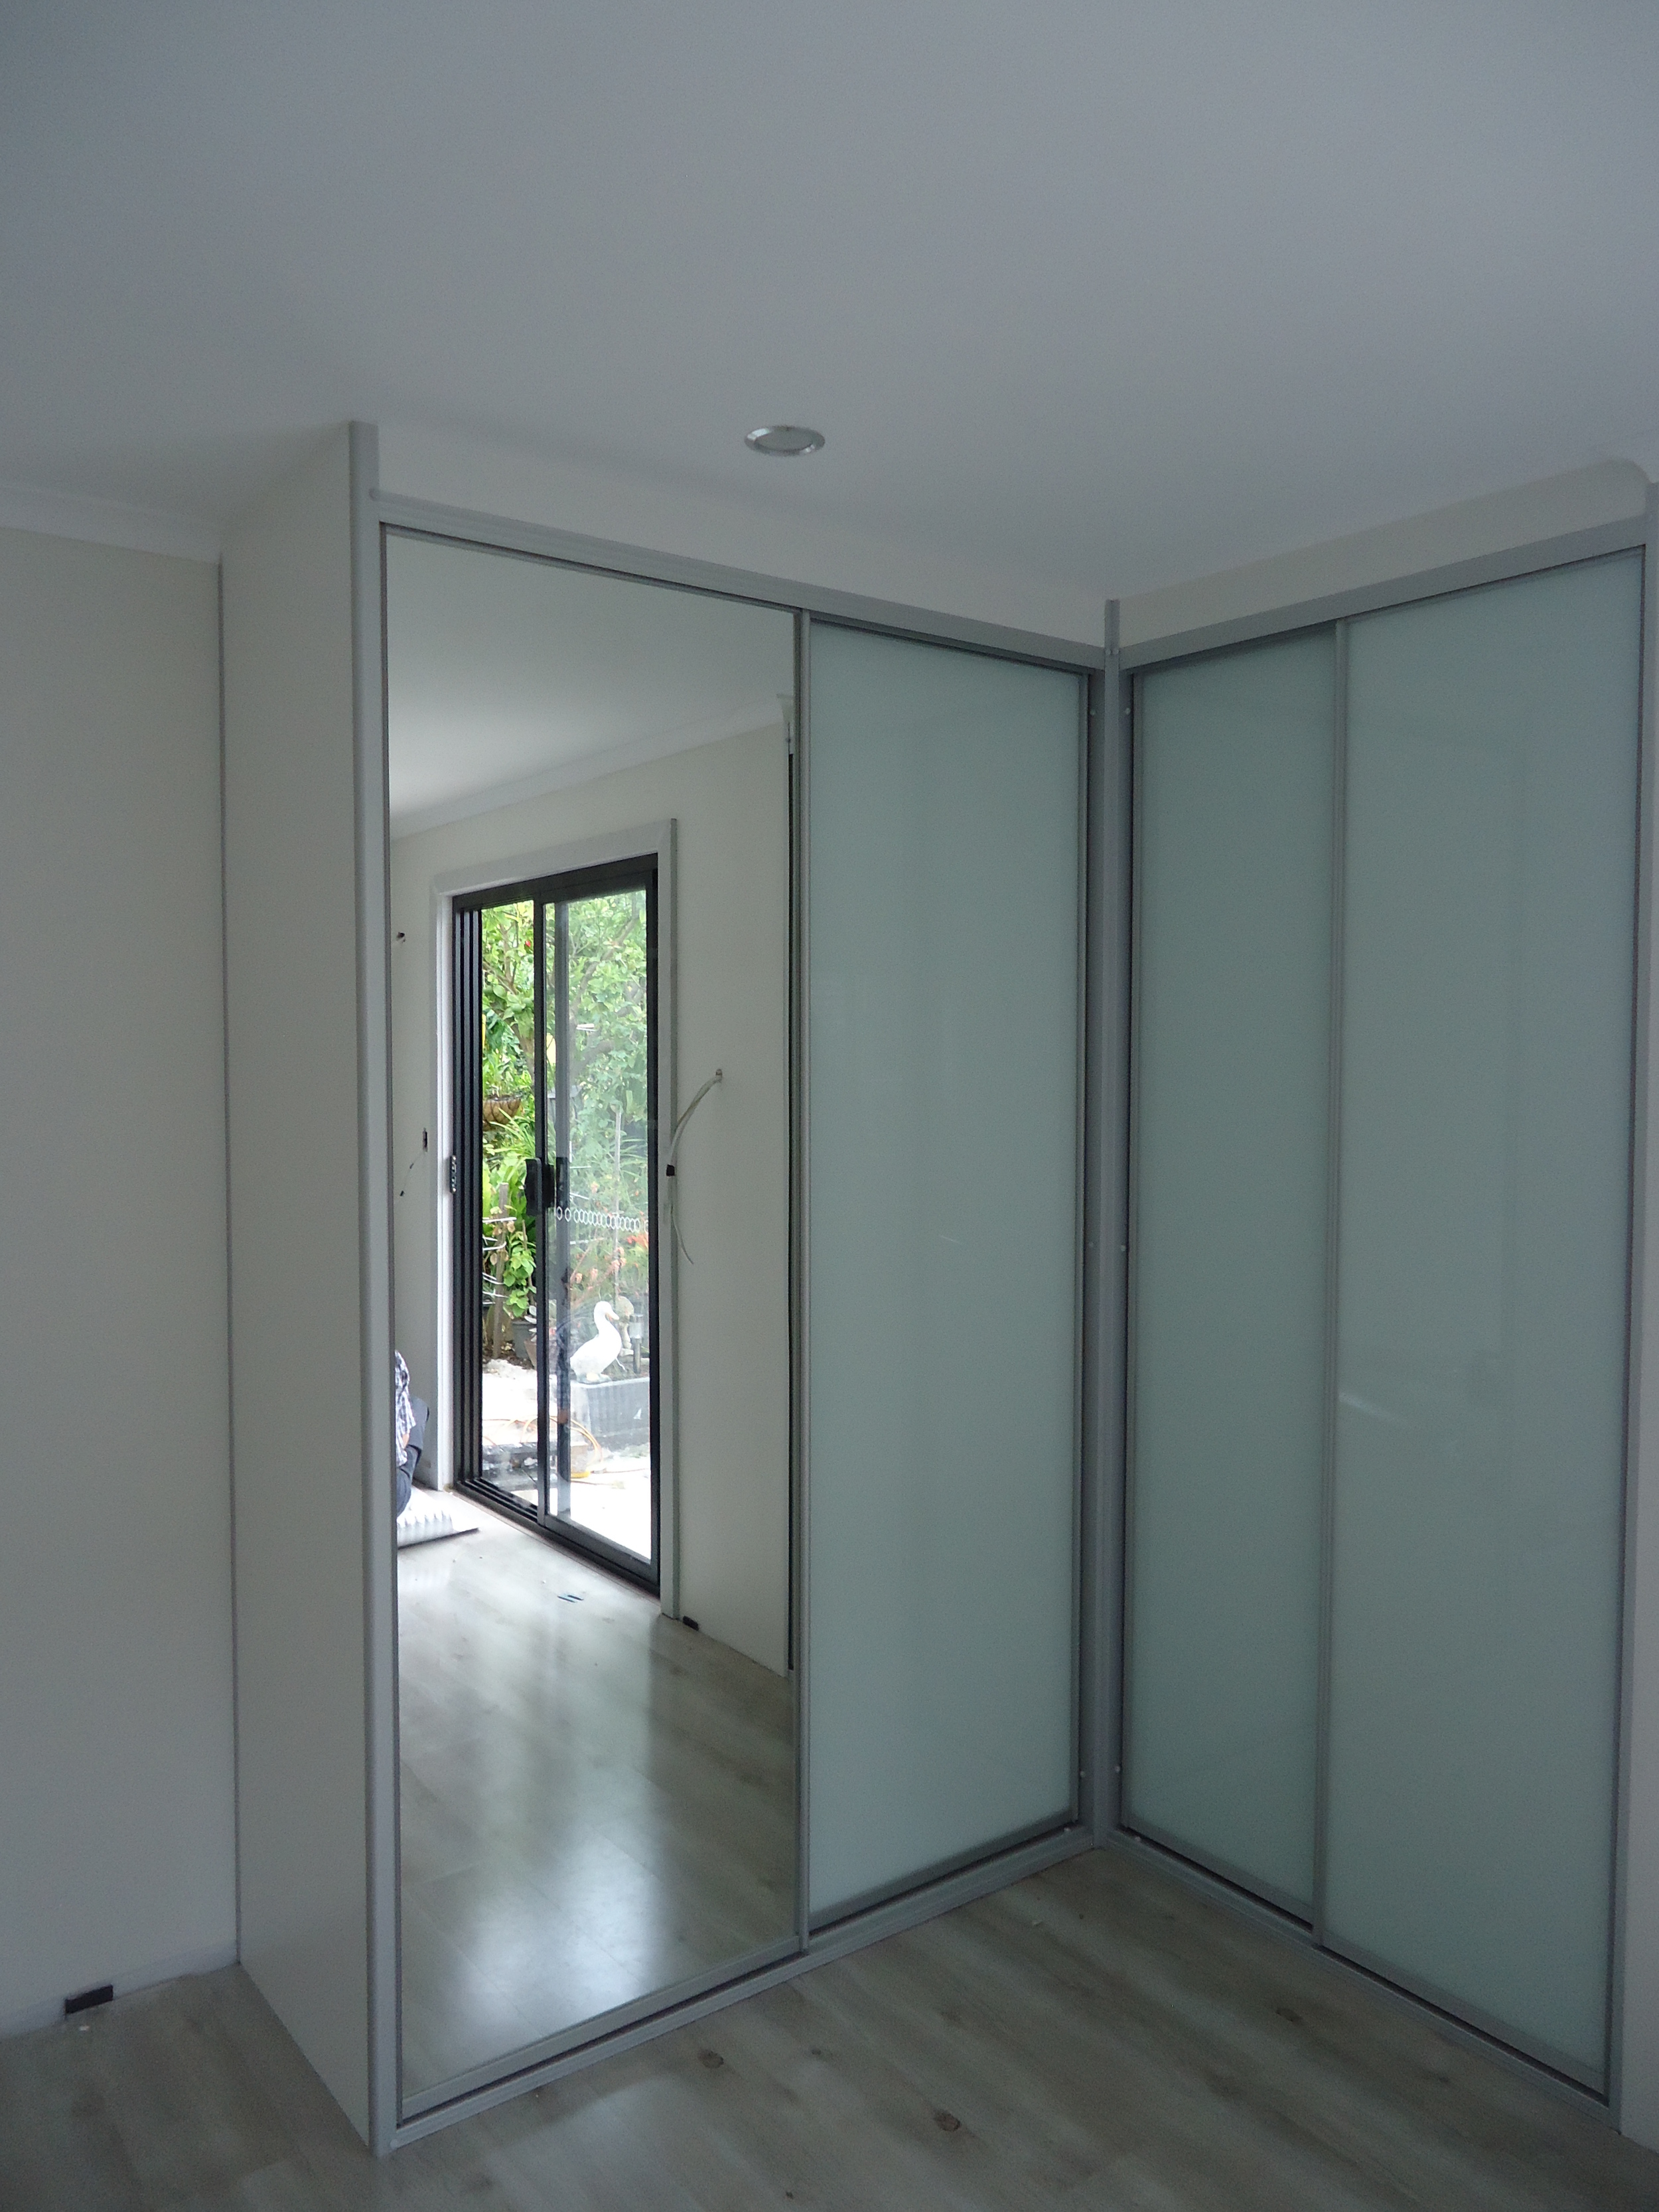 frosted glass and mirror corner wardrobe.JPG